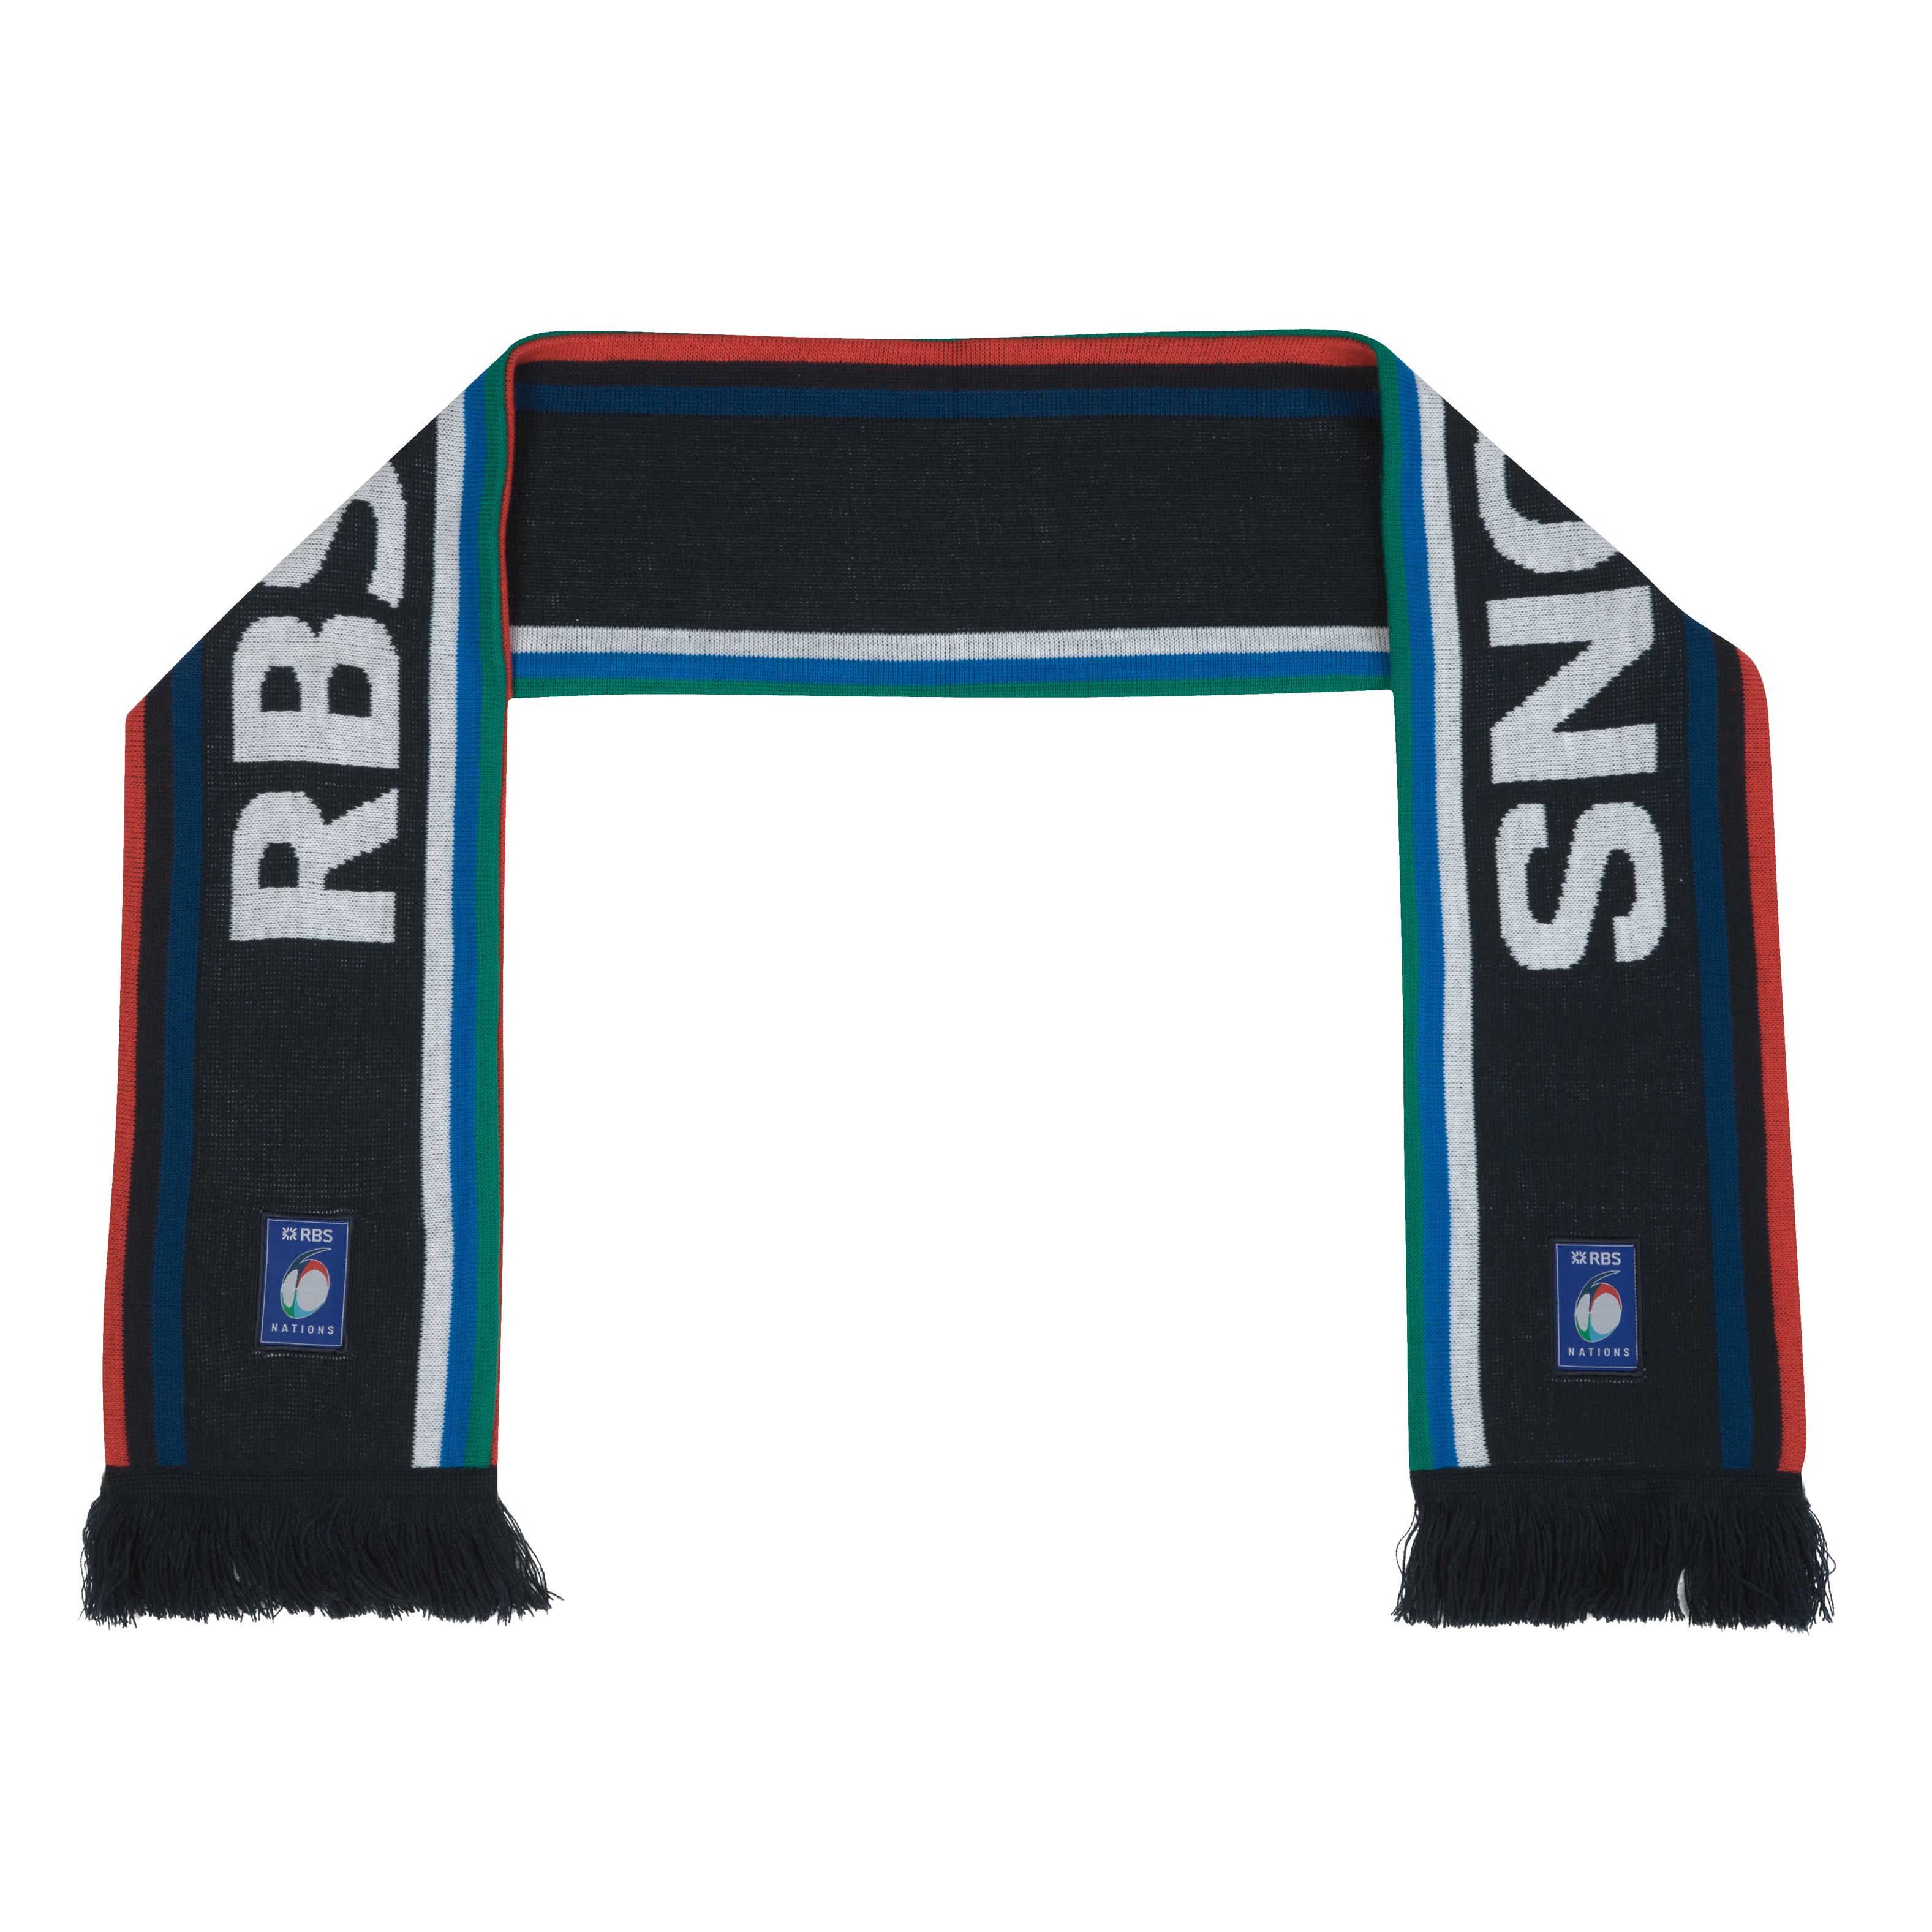 RBS 6 Nations Jacquard Scarf. for 5€